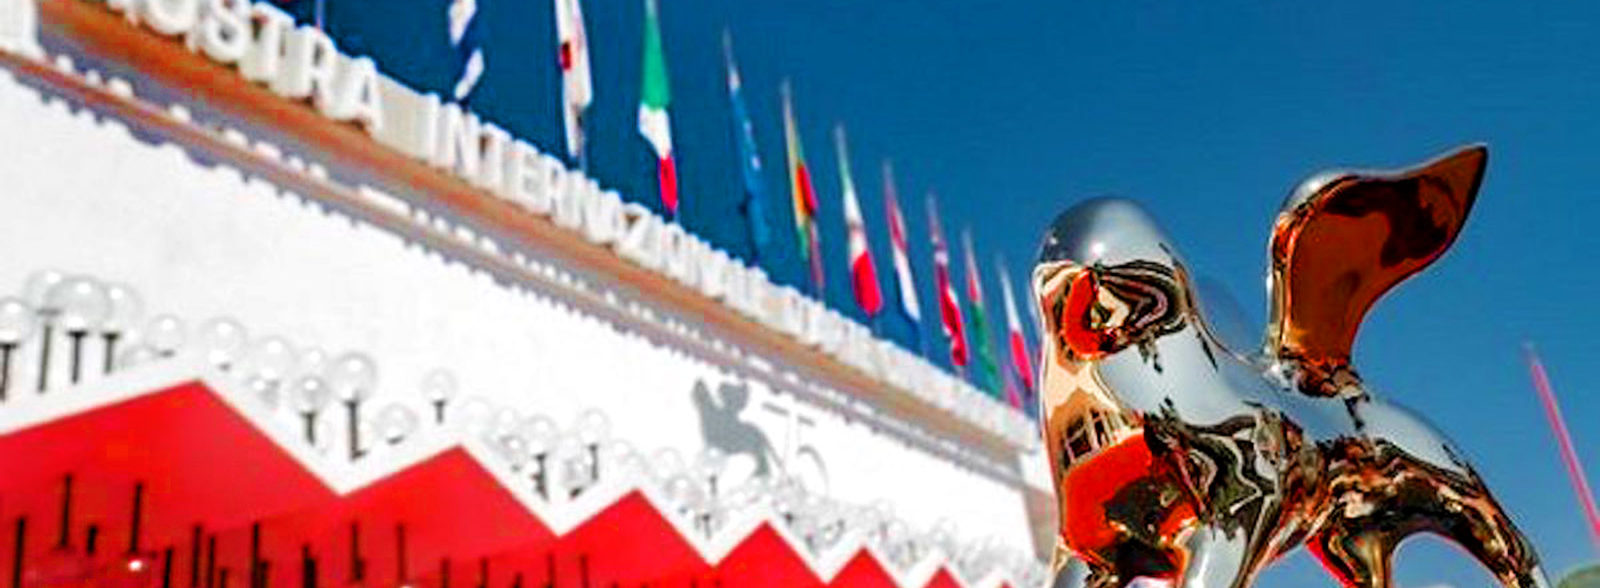 Venice Film Festival: how to organize your trip